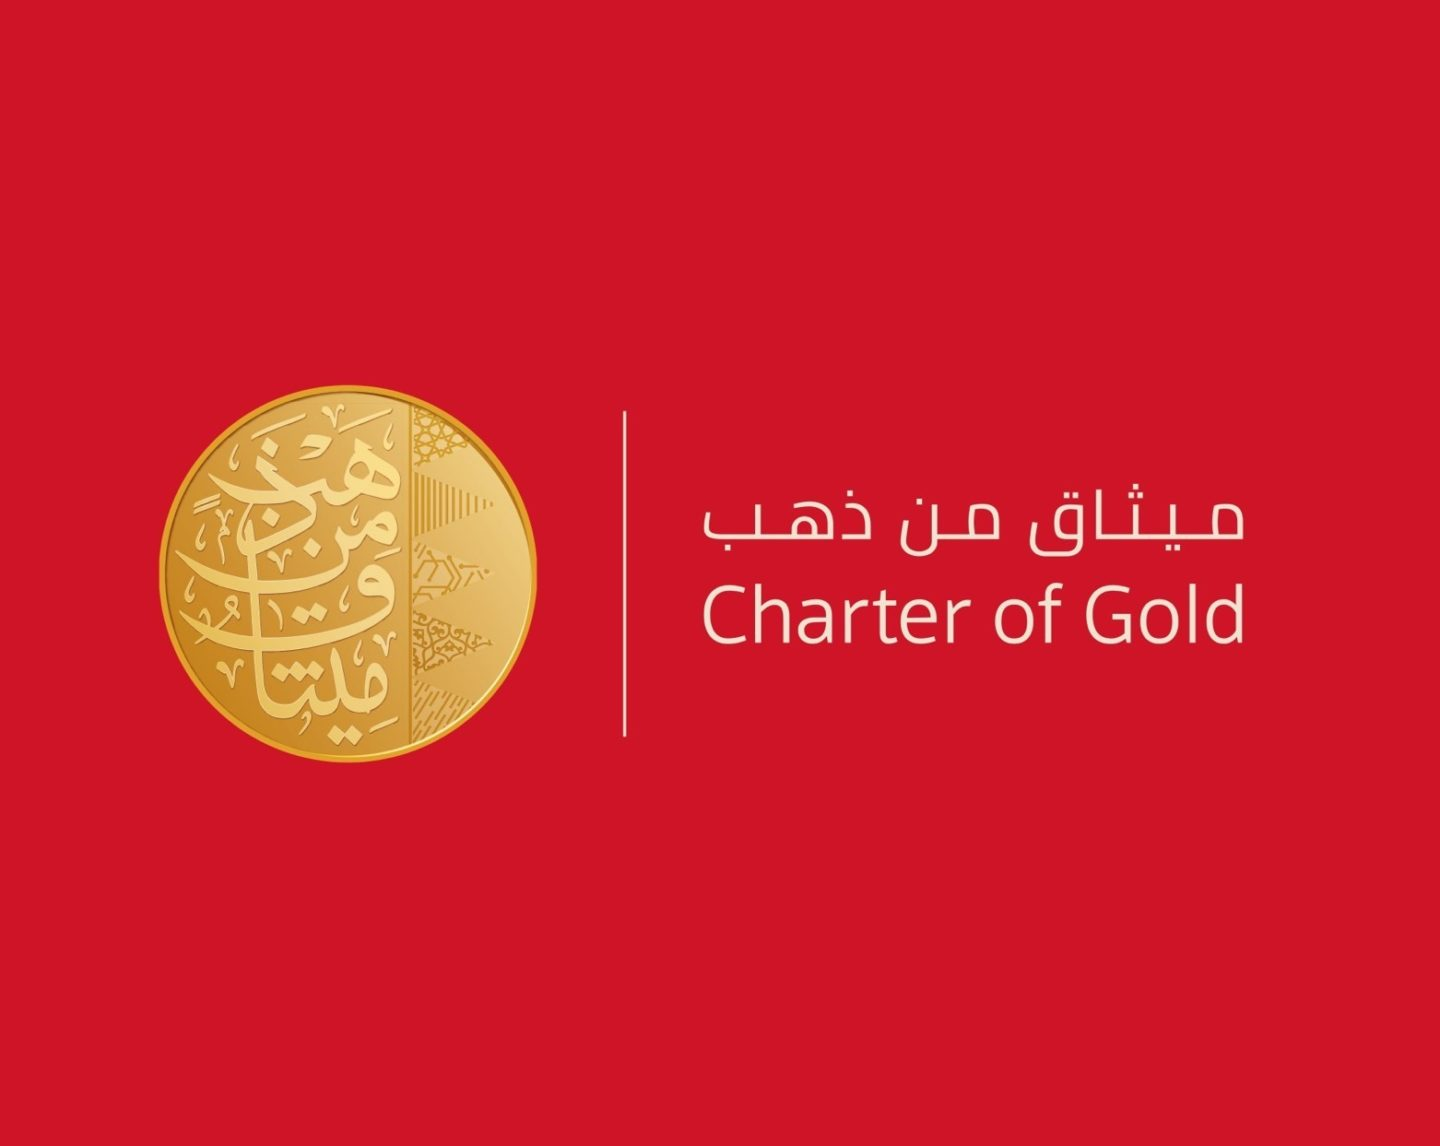 Interstate charter of gold